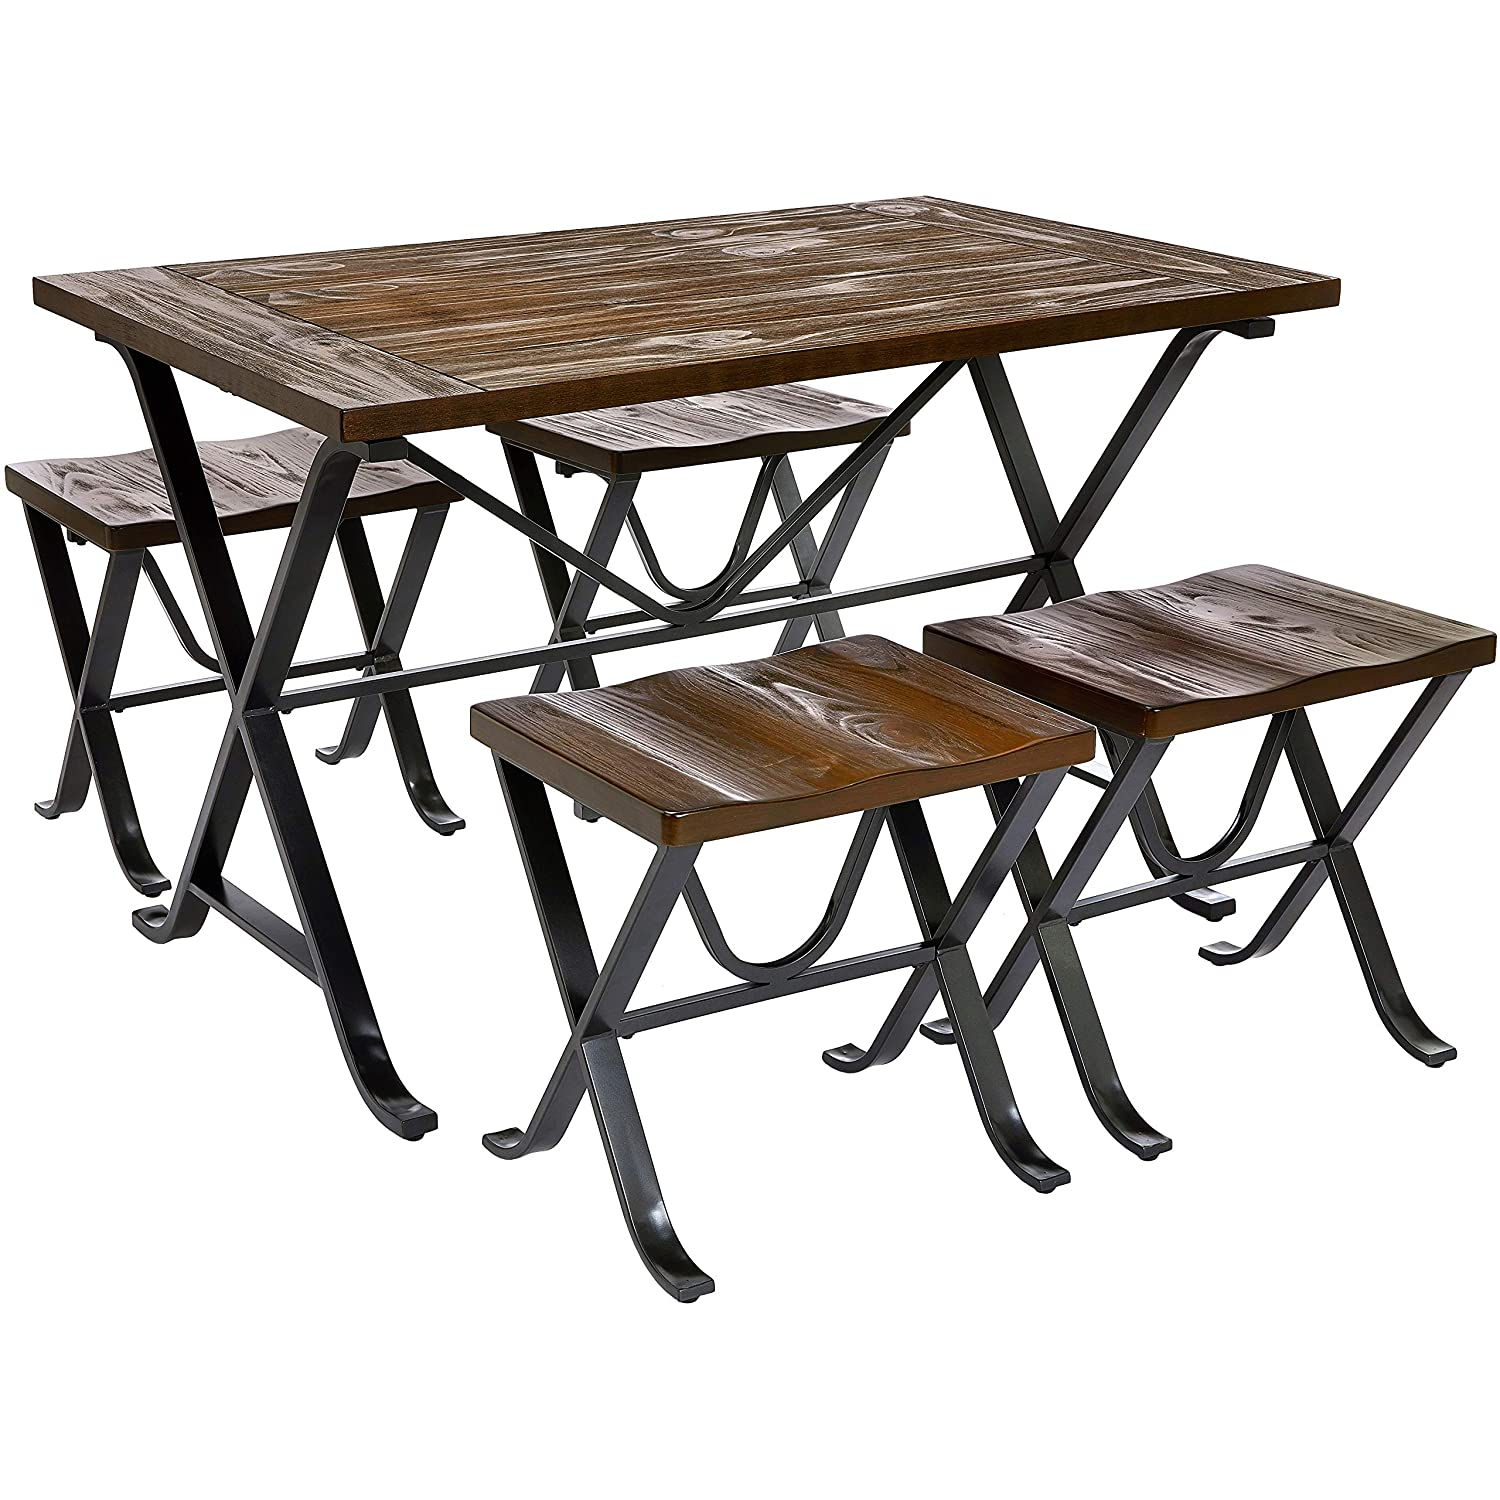 Ball & Cast Britton Industrial-Style Rectangular Dining Table and Matching Stools with Black Metal Legs, 5-Piece Set, Saloon Brown